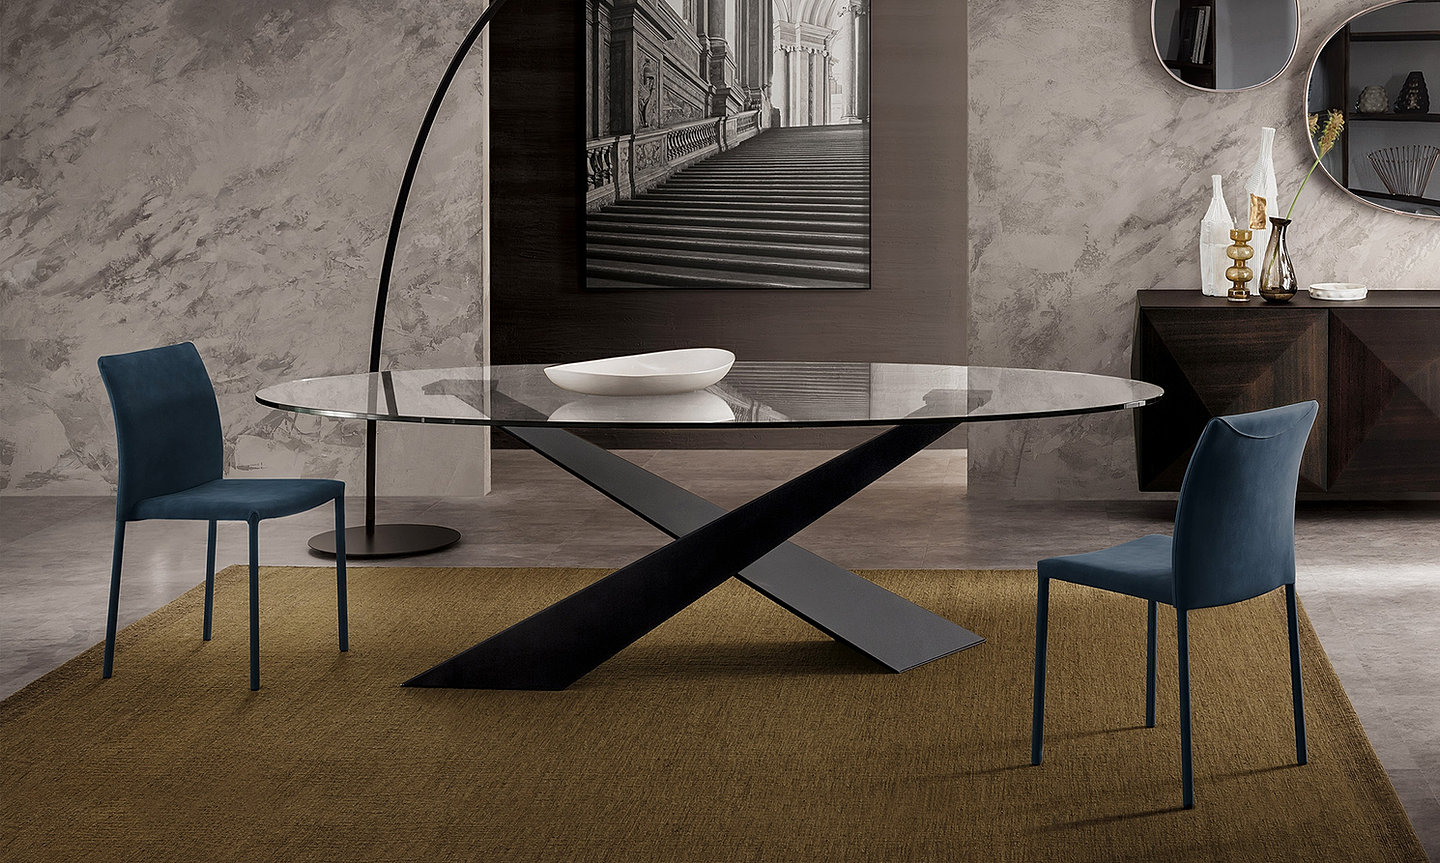 Italian modern dining tables - Riflessi Modern Italian Dining Table